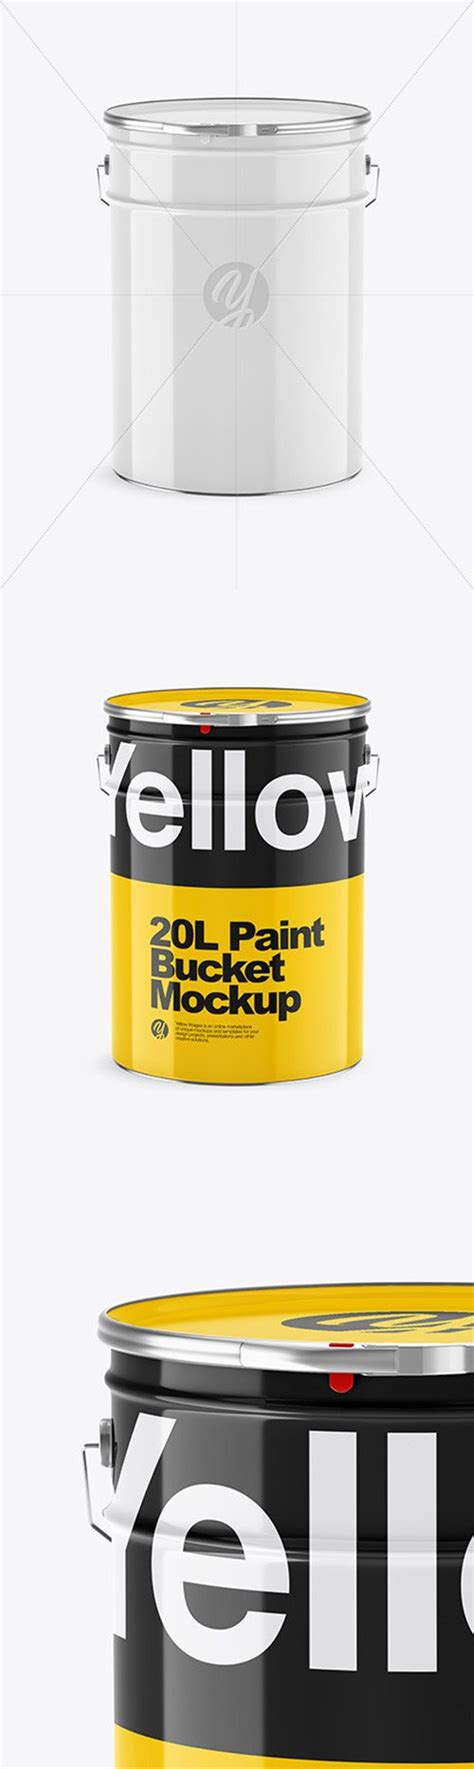 20 striking packaging designs you have to see. 20L Glossy Paint Bucket Mockup 65166 » NitroGFX - Download ...